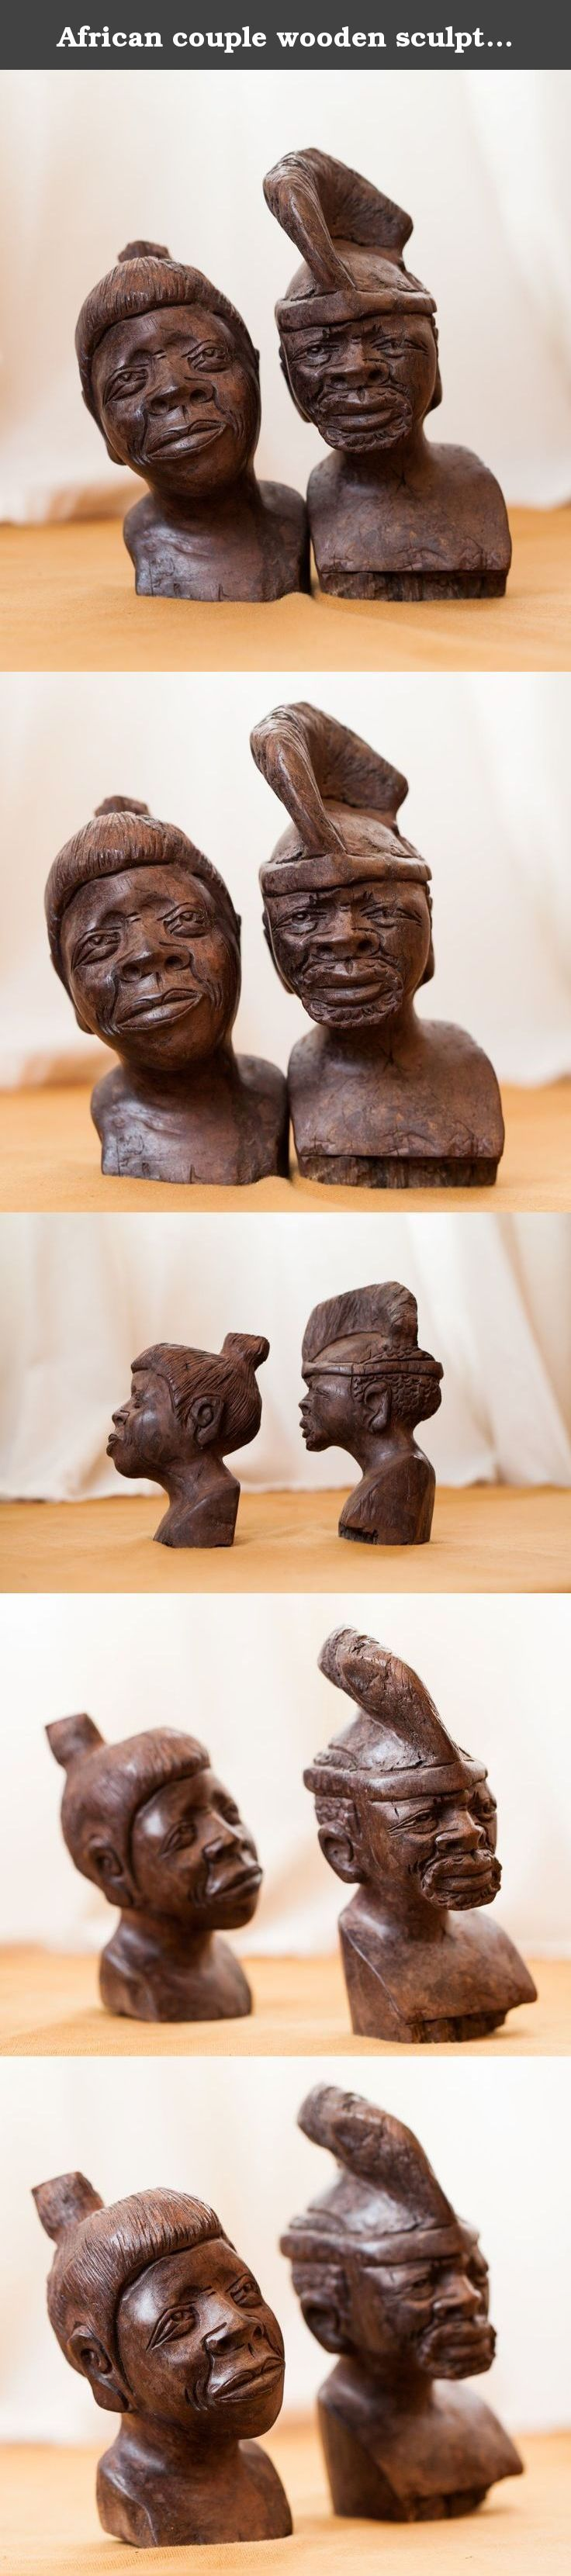 African couple wooden sculptures, Handcarved. Outstanding woodwork, Man and woman heads portraits.